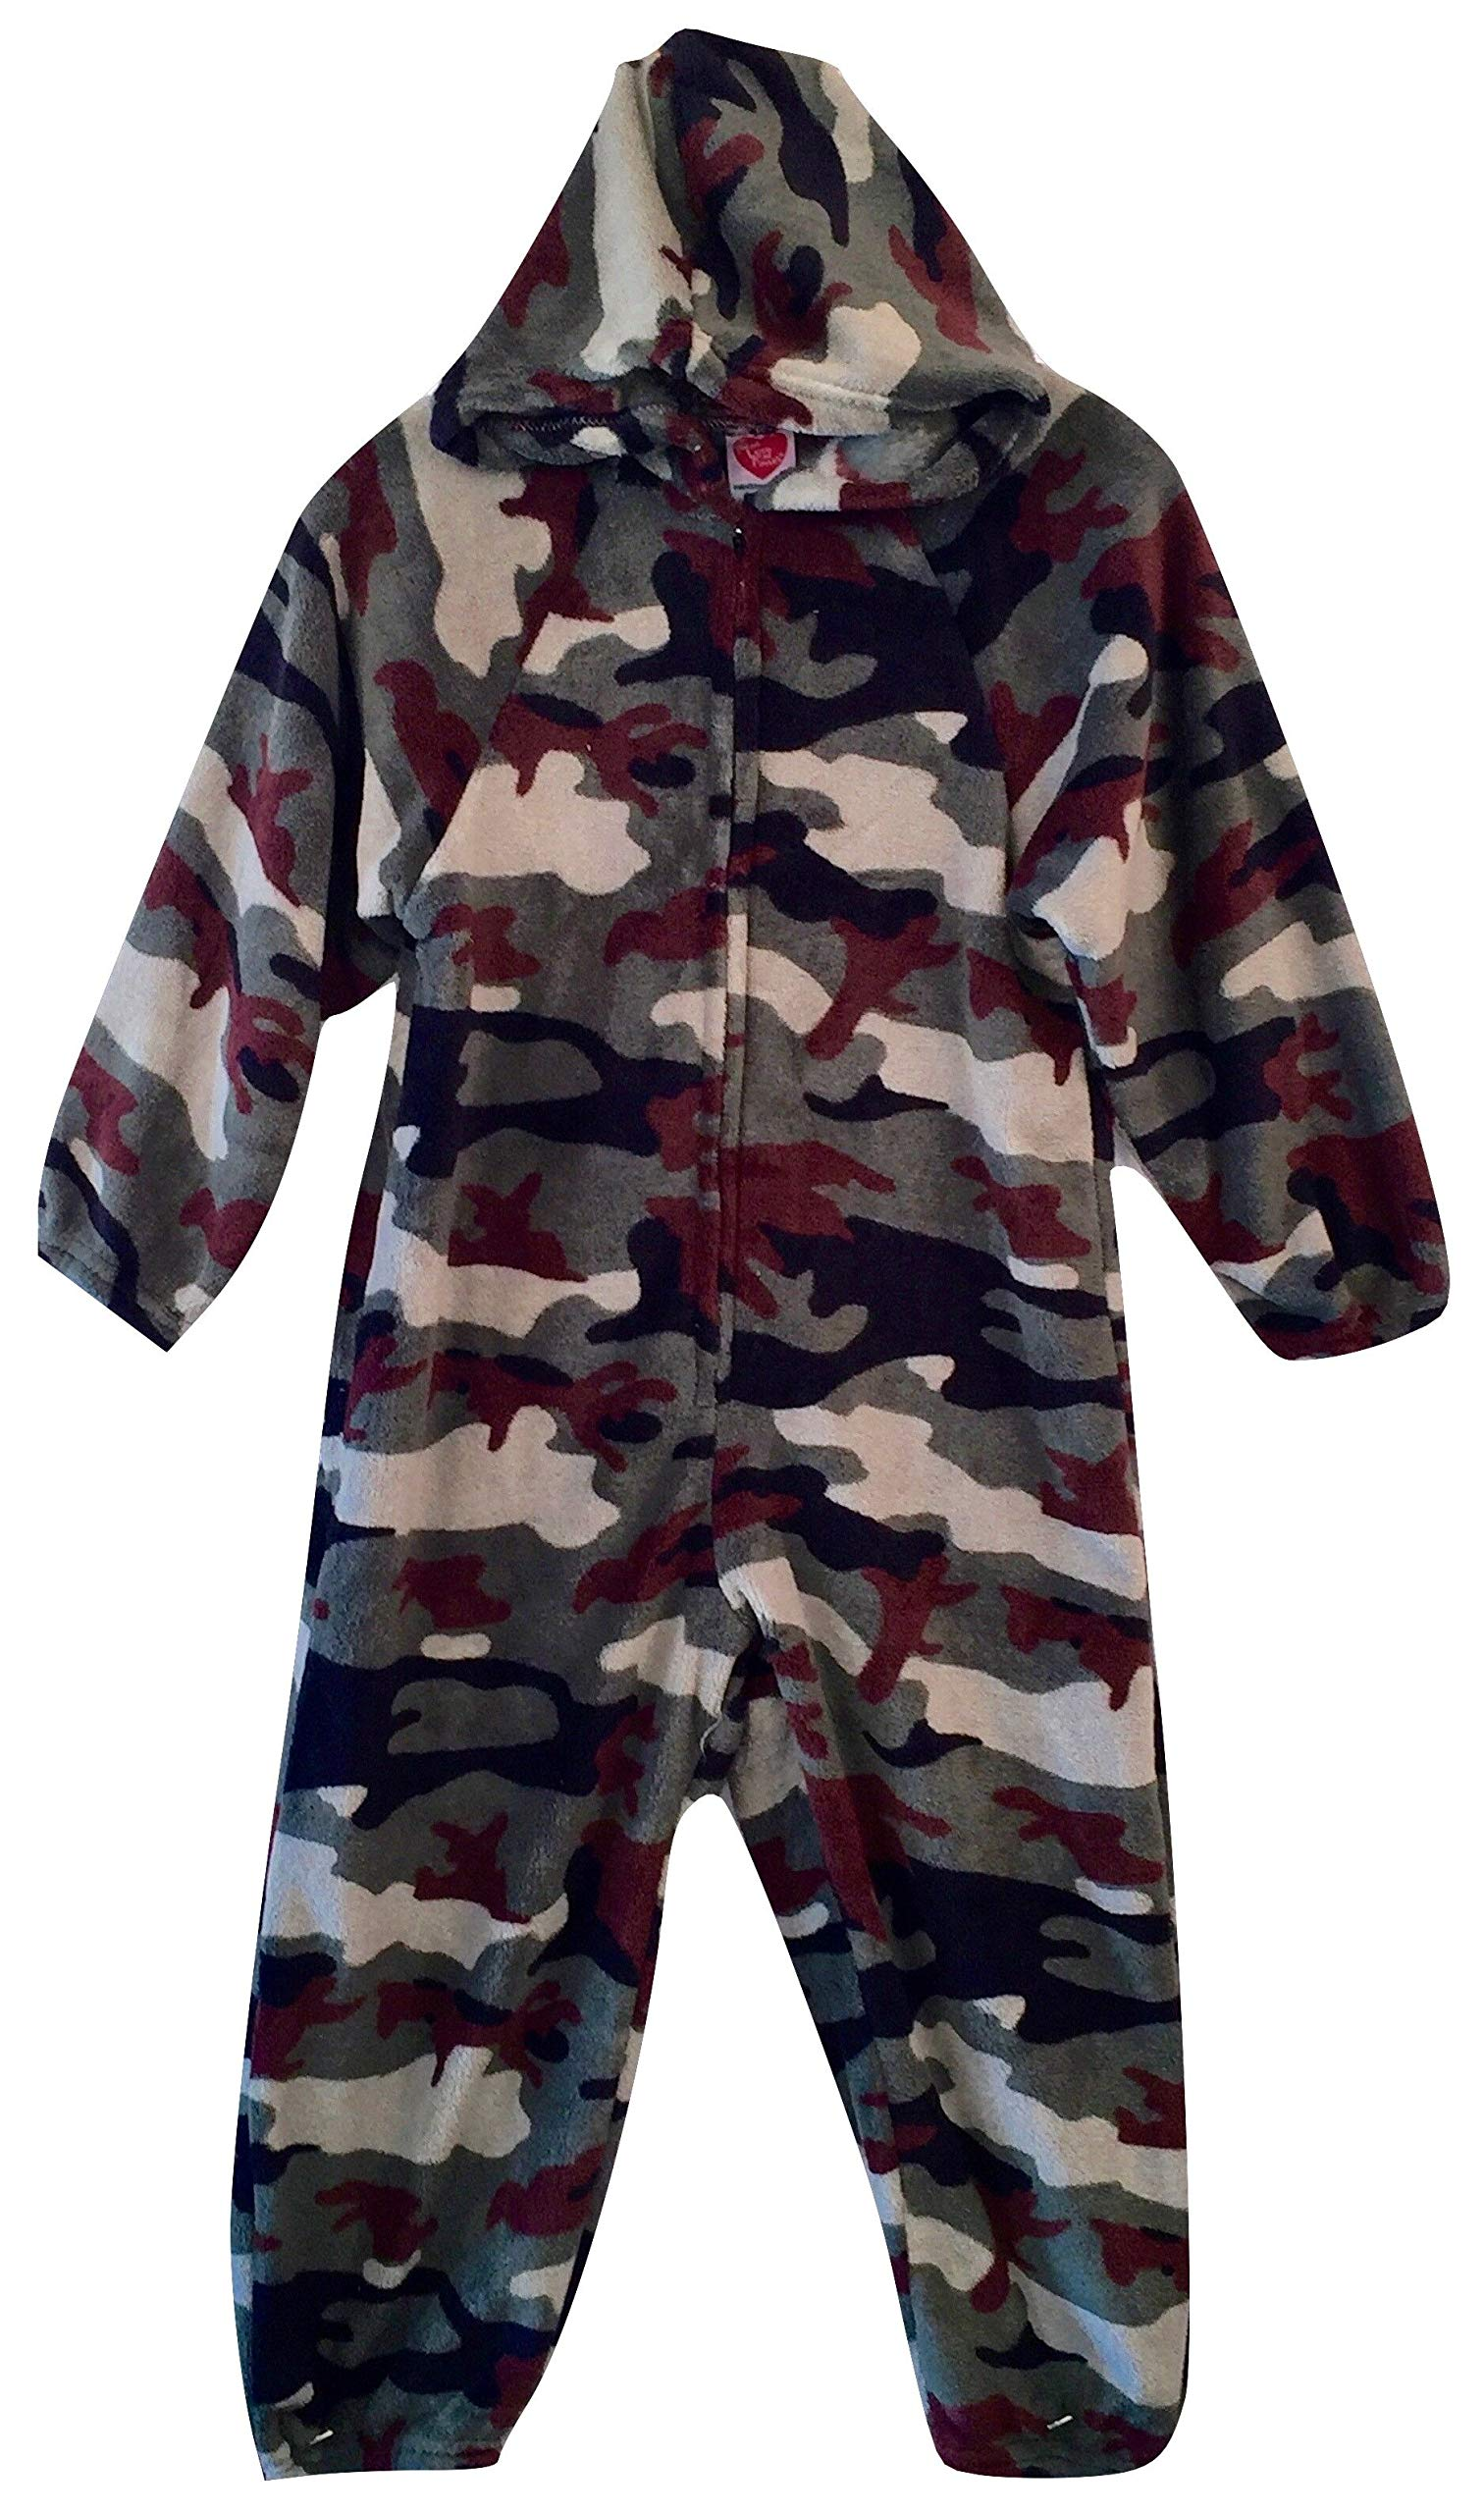 Made with Love and Kisses Kid's Fuzzy Plush Jumpsuit/One Piece Pajama with Hood - Green Camo - 12/14